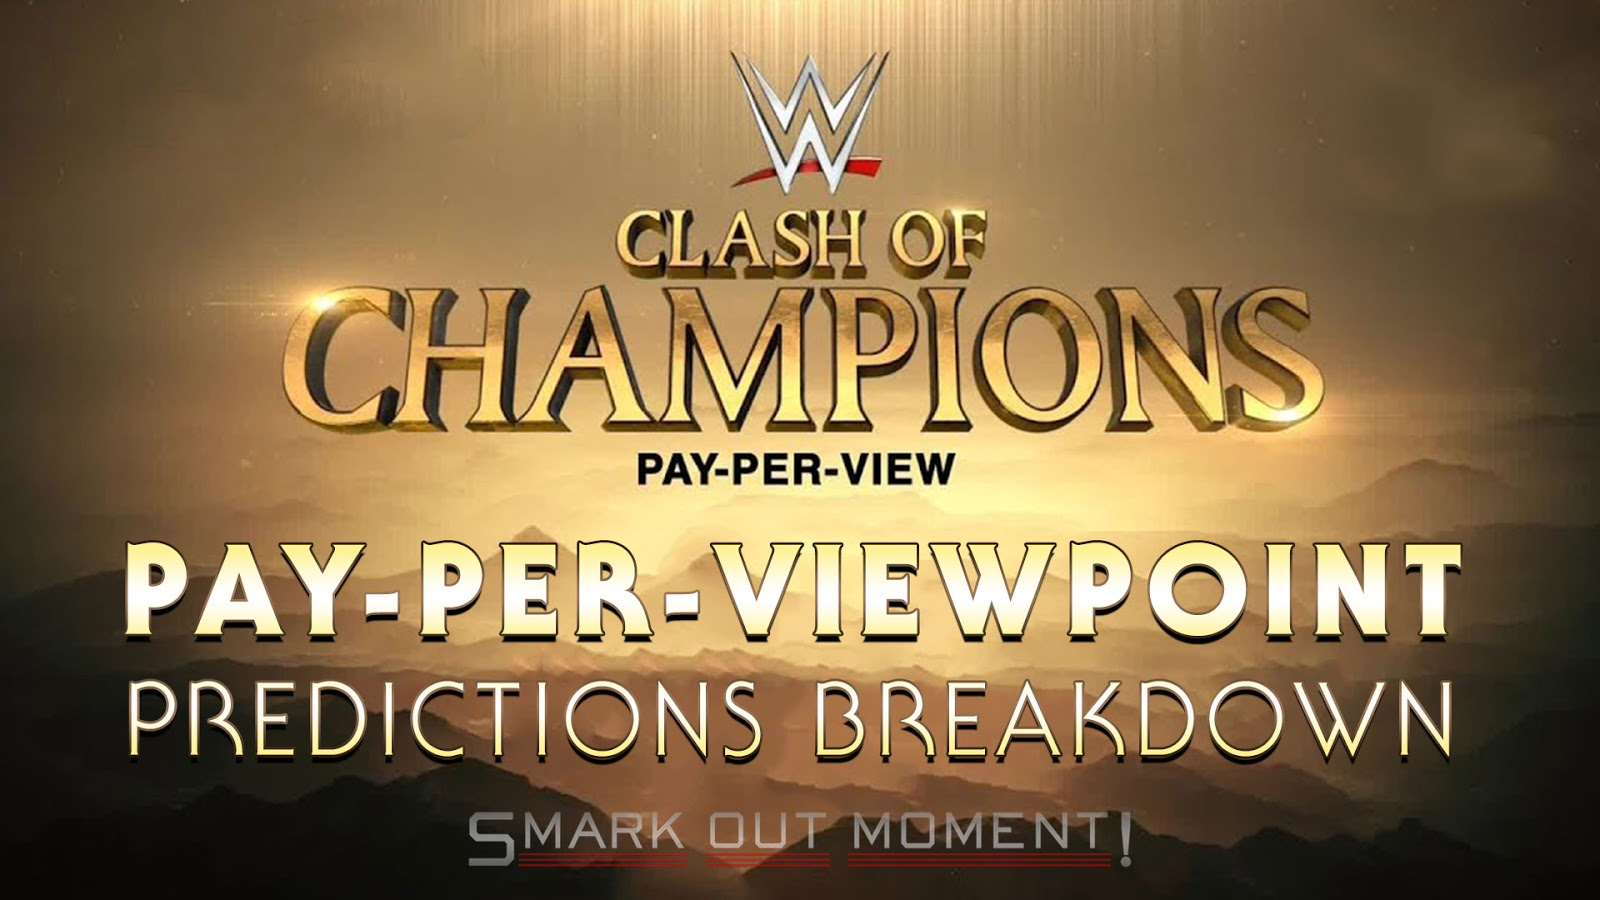 WWE CLASH OF CHAMPIONS 2017 spoilers podcast